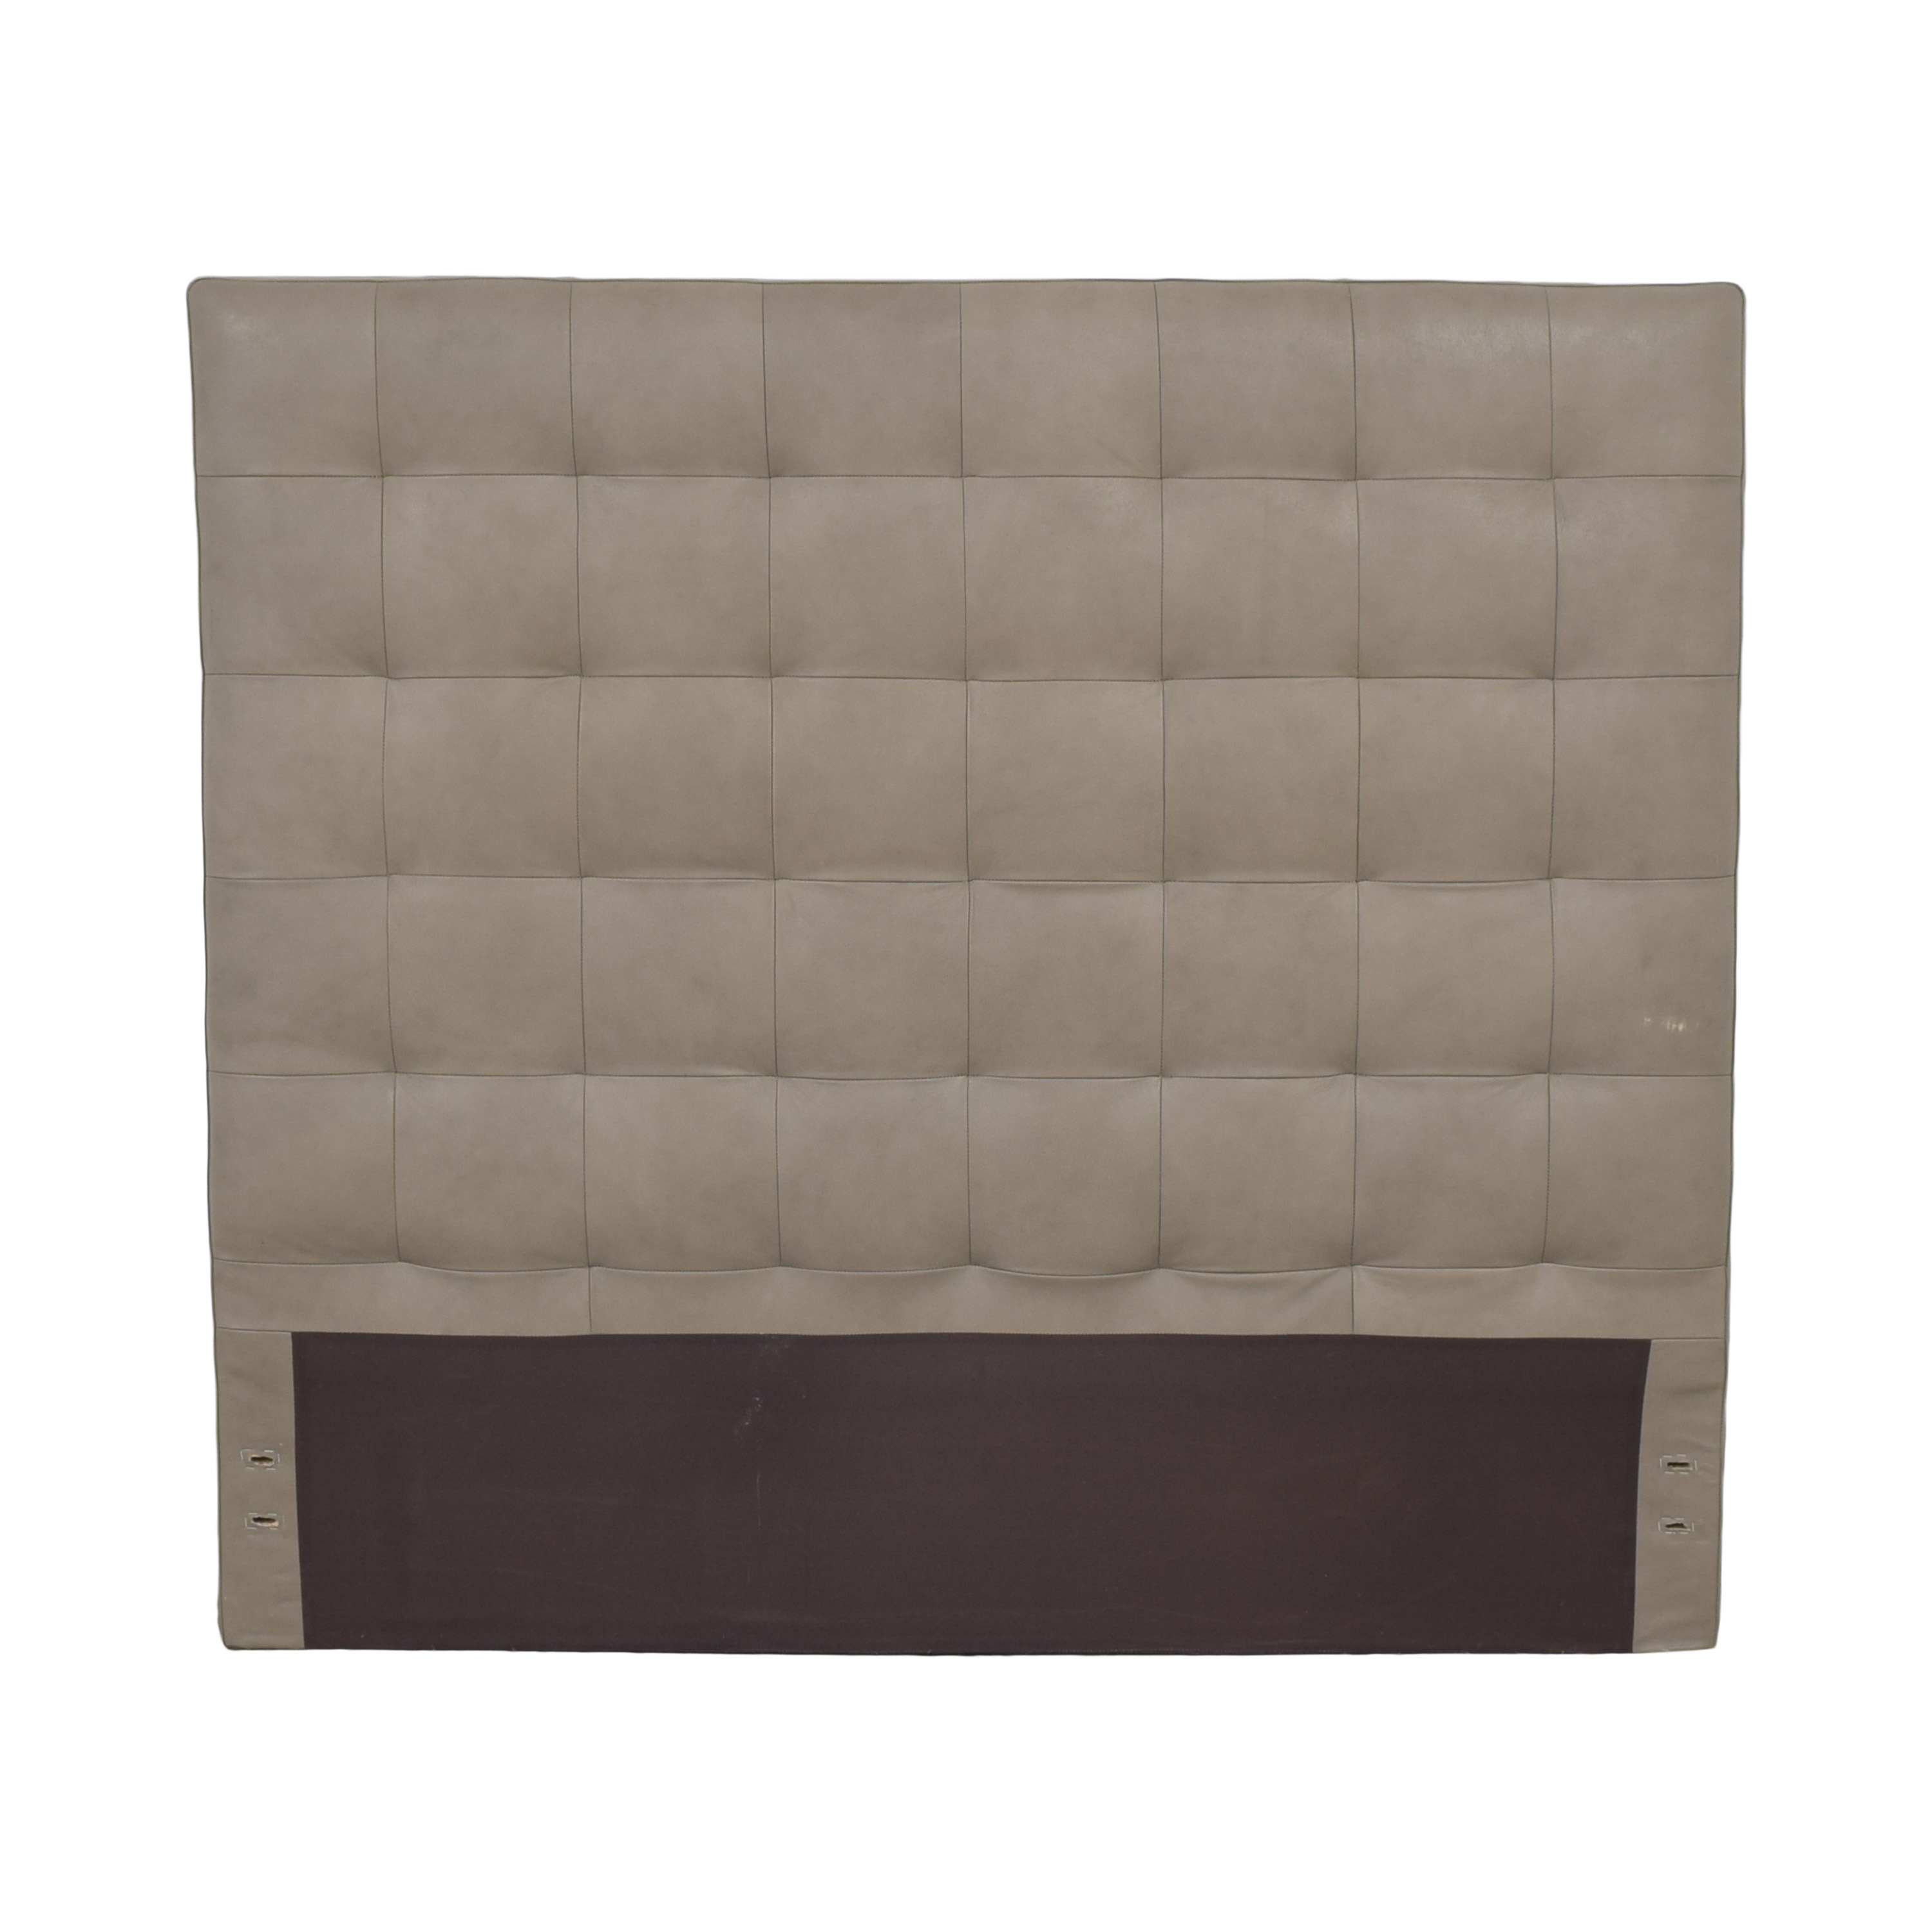 West Elm West Elm Tall Grid Tufted Queen Headboard ct